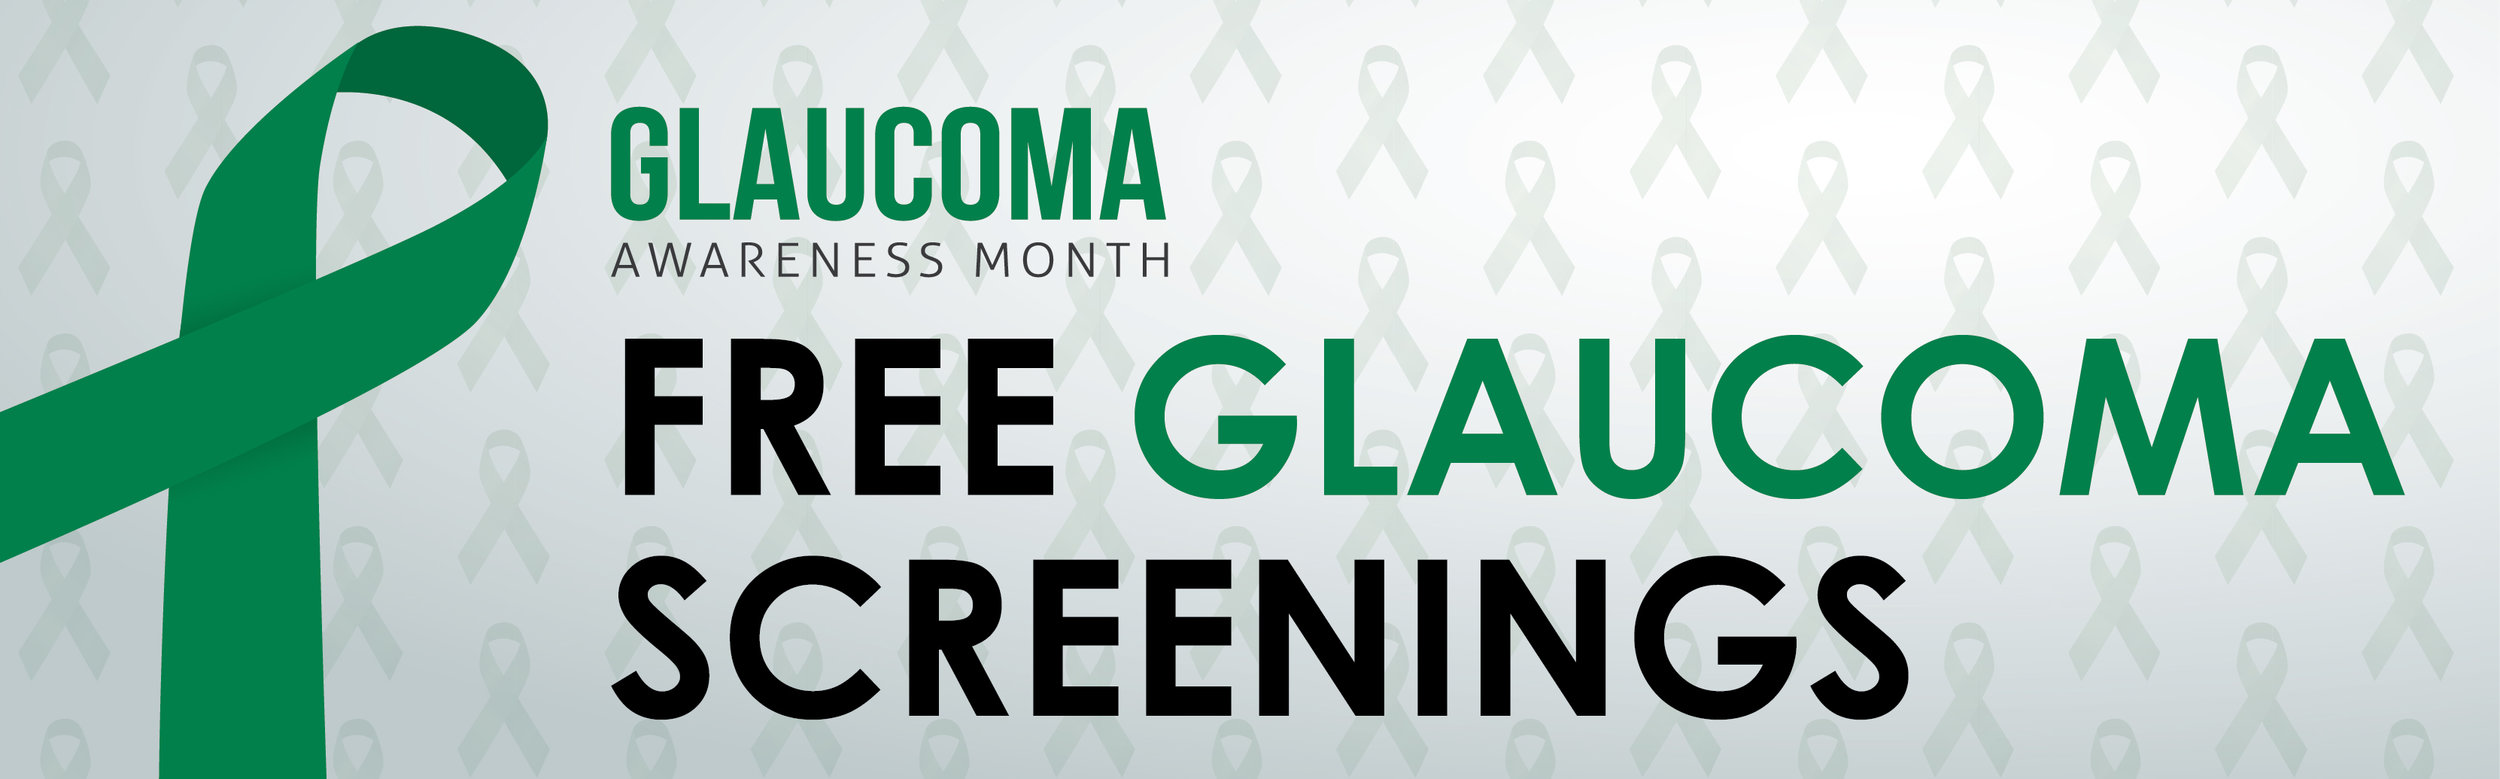 Glaucoma - Free Screenings - McFarland Eye Care